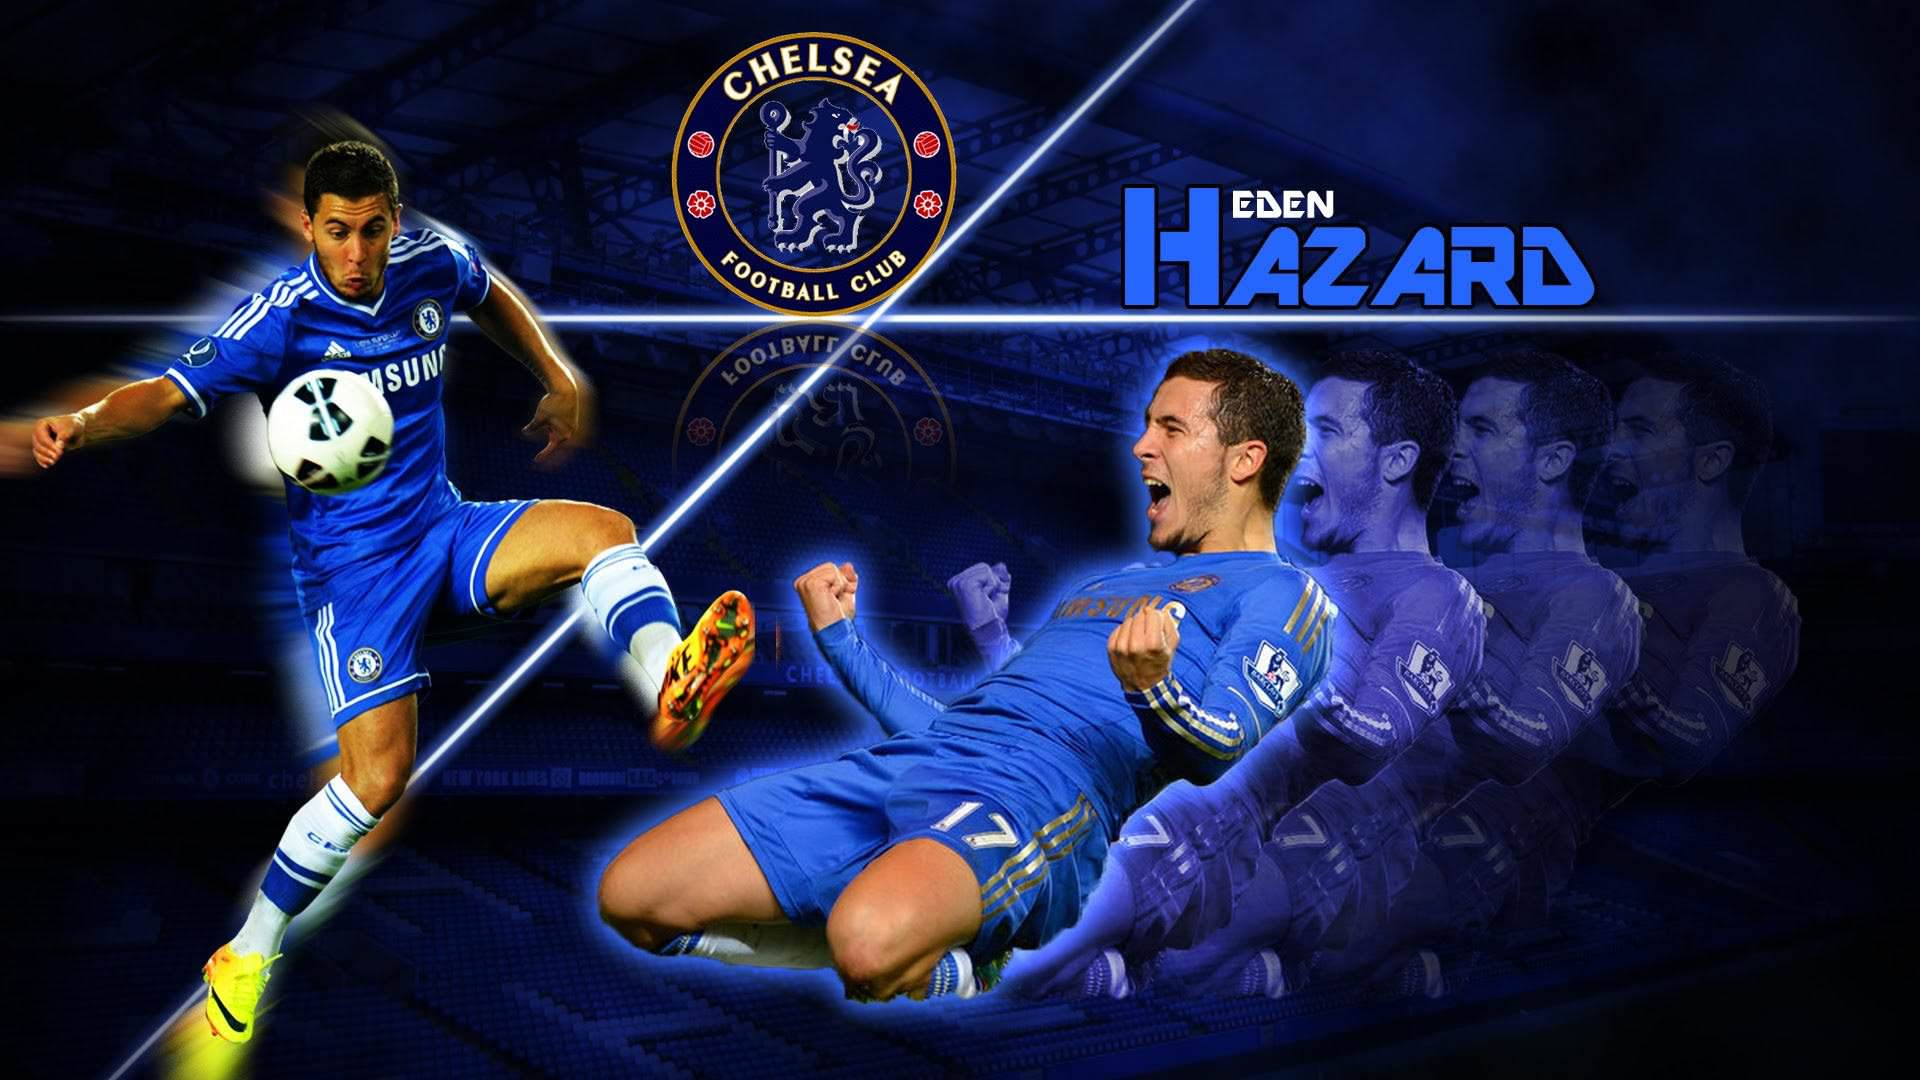 Eden Hazard Wallpapers Chelsea And Lille Eden Hazard S